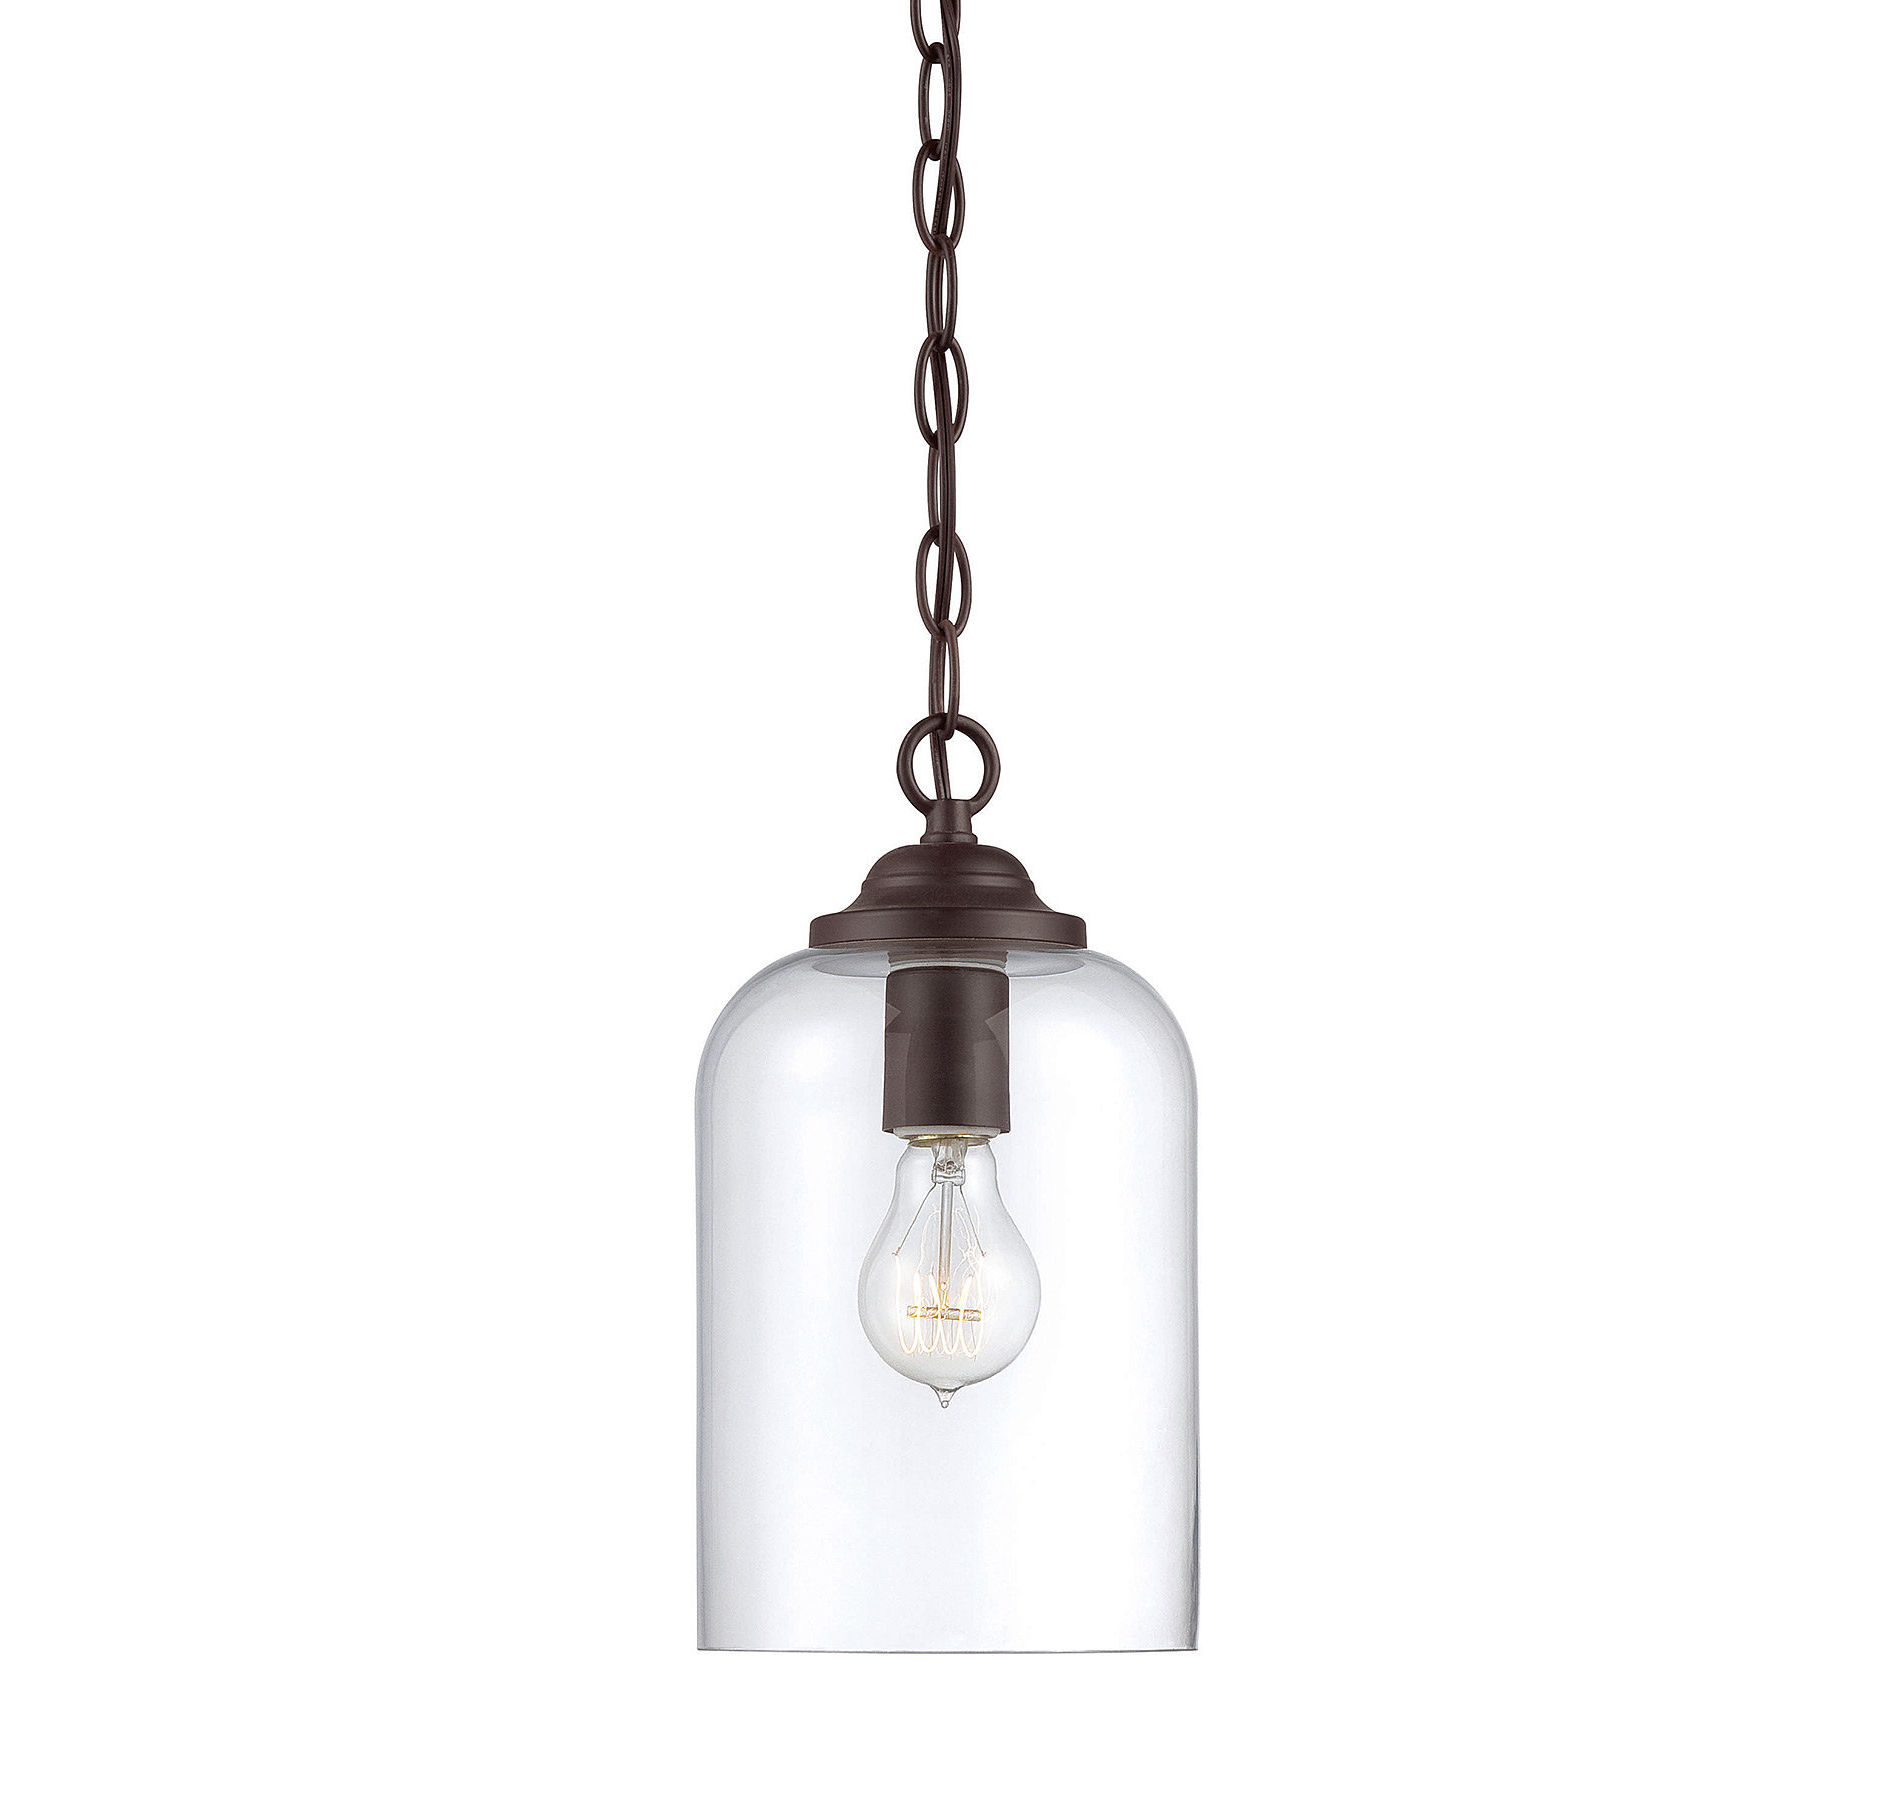 Silber 1 Light Single Bell Pendant In Widely Used Clematite 1 Light Single Jar Pendants (View 18 of 25)